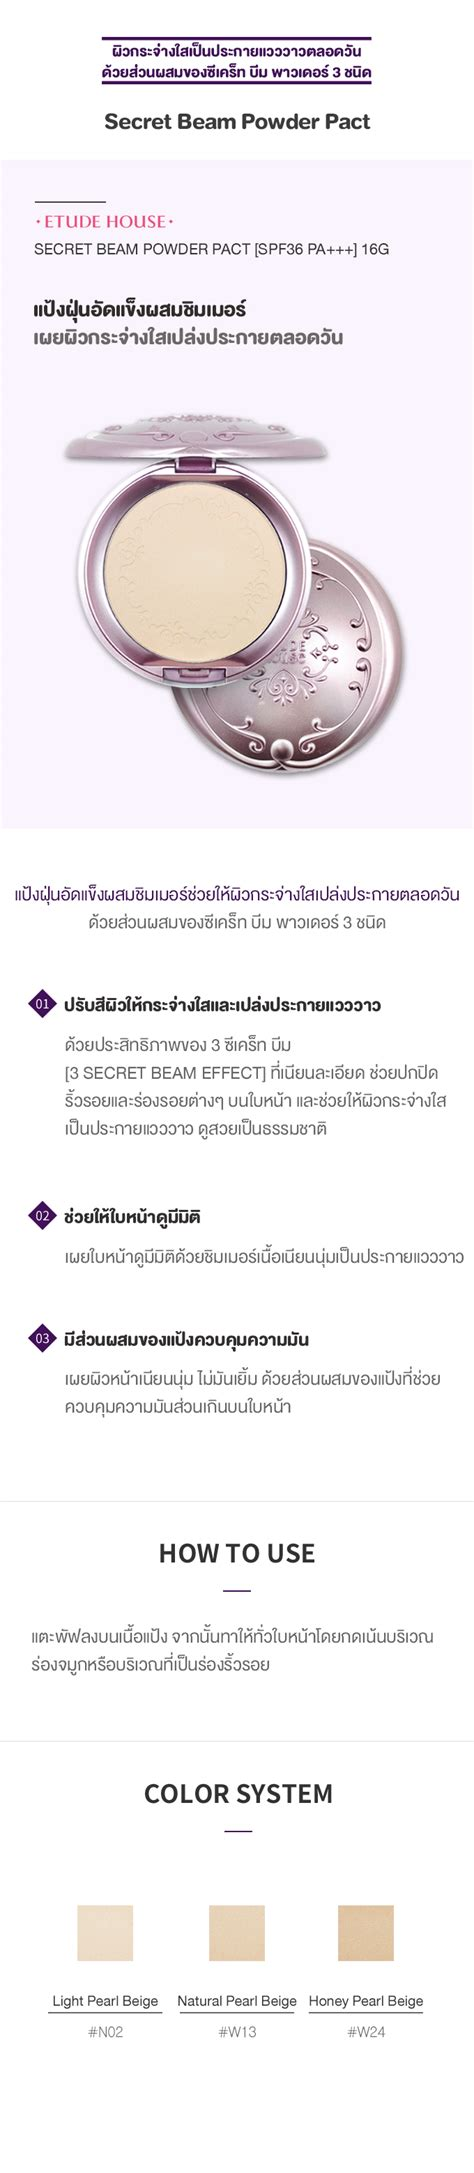 Etude Secret Beam Powder Pact secret beam powder pact etude house thailand อ ท ด